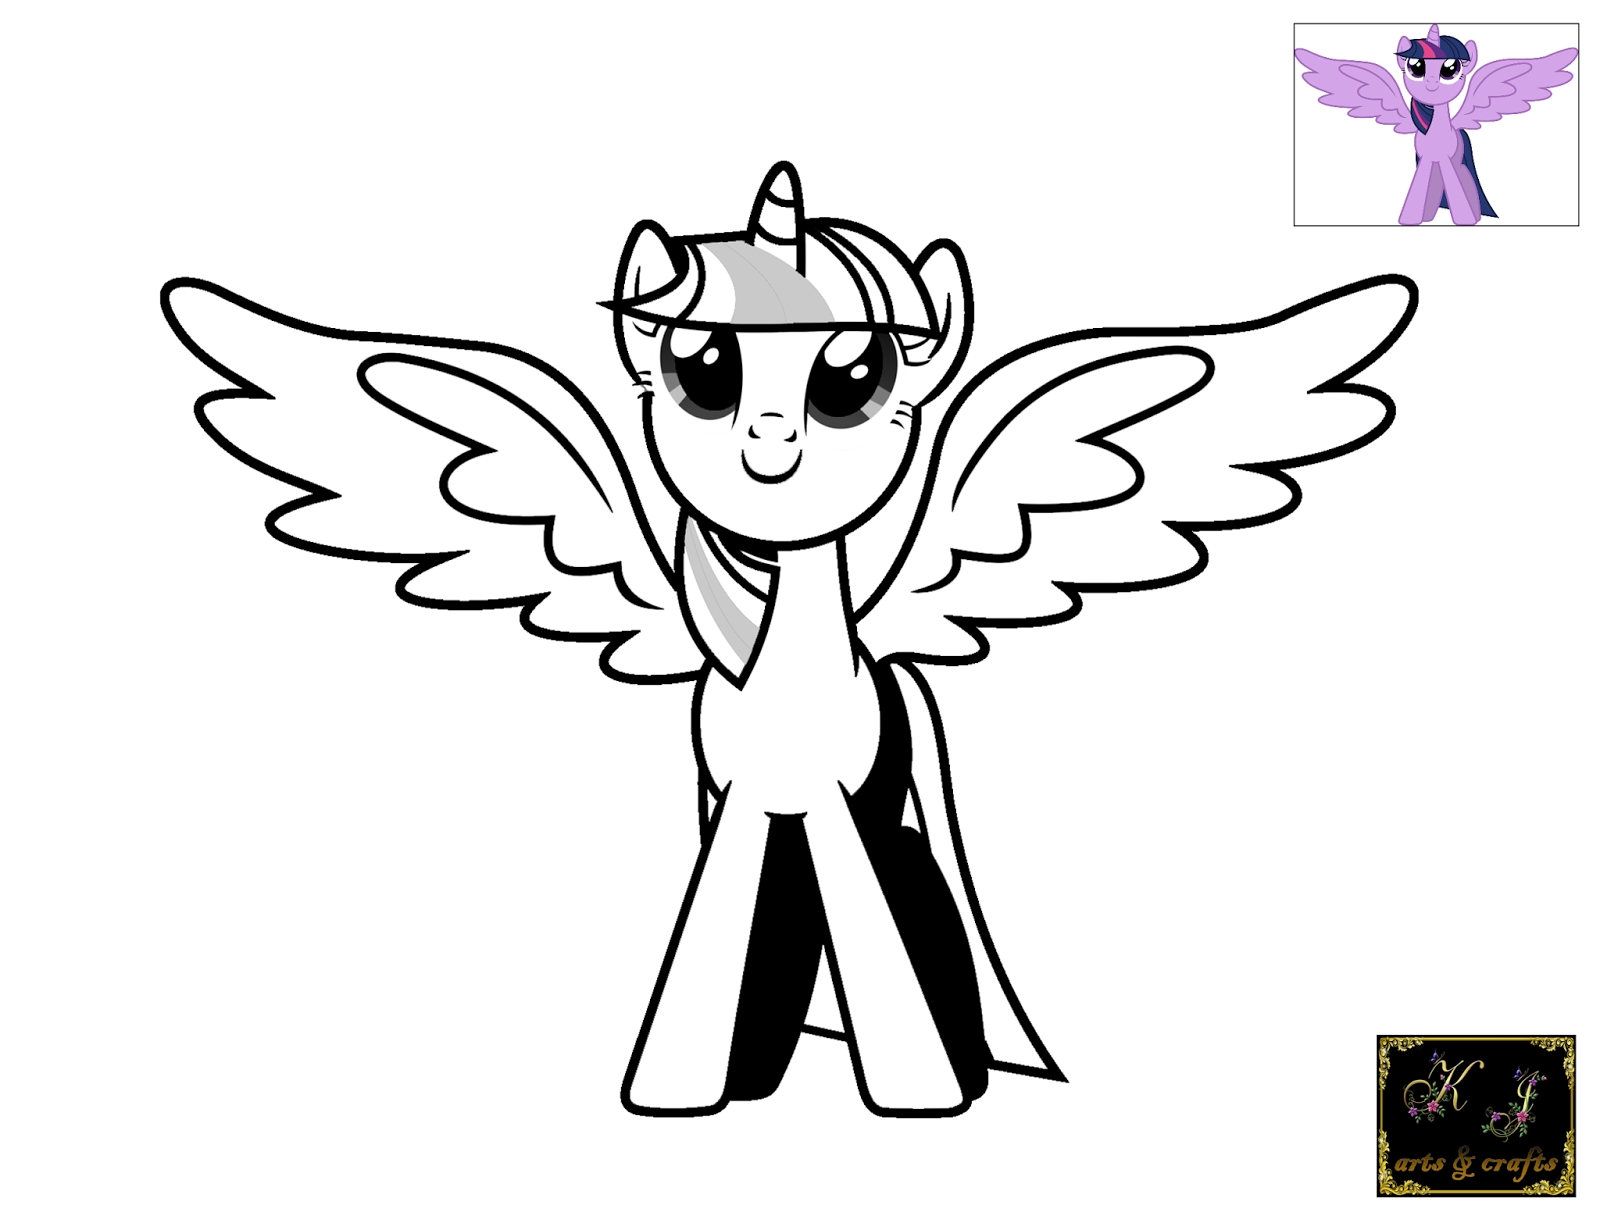 twilight sparkle coloring page - twilight sparkle coloring pages